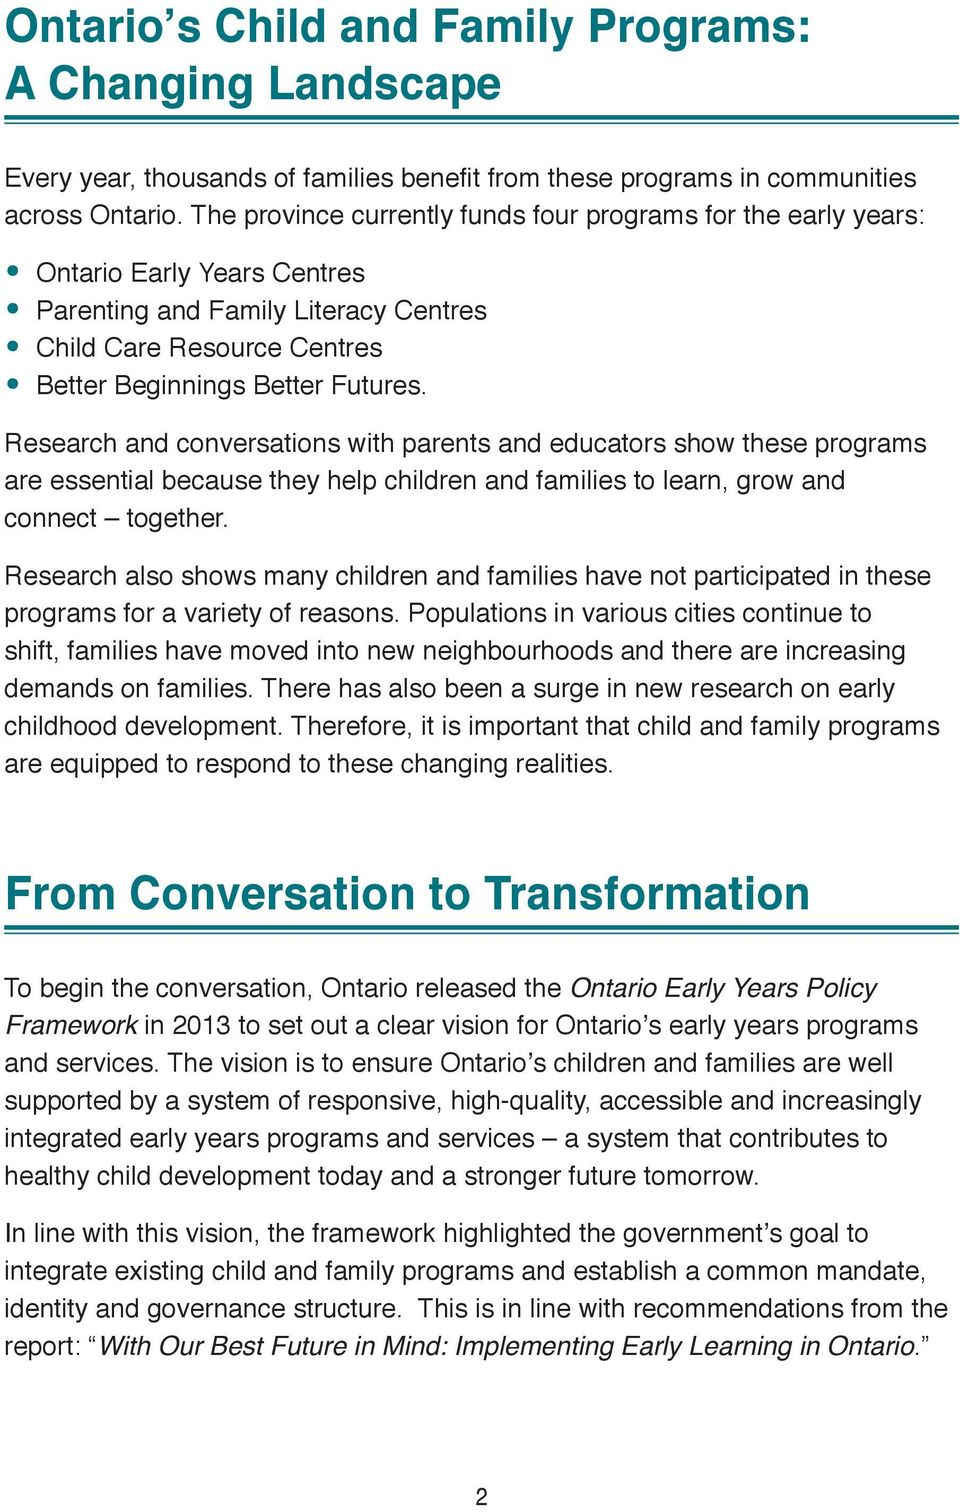 Research and conversations with parents and educators show these programs are essential because they help children and families to learn, grow and connect together.